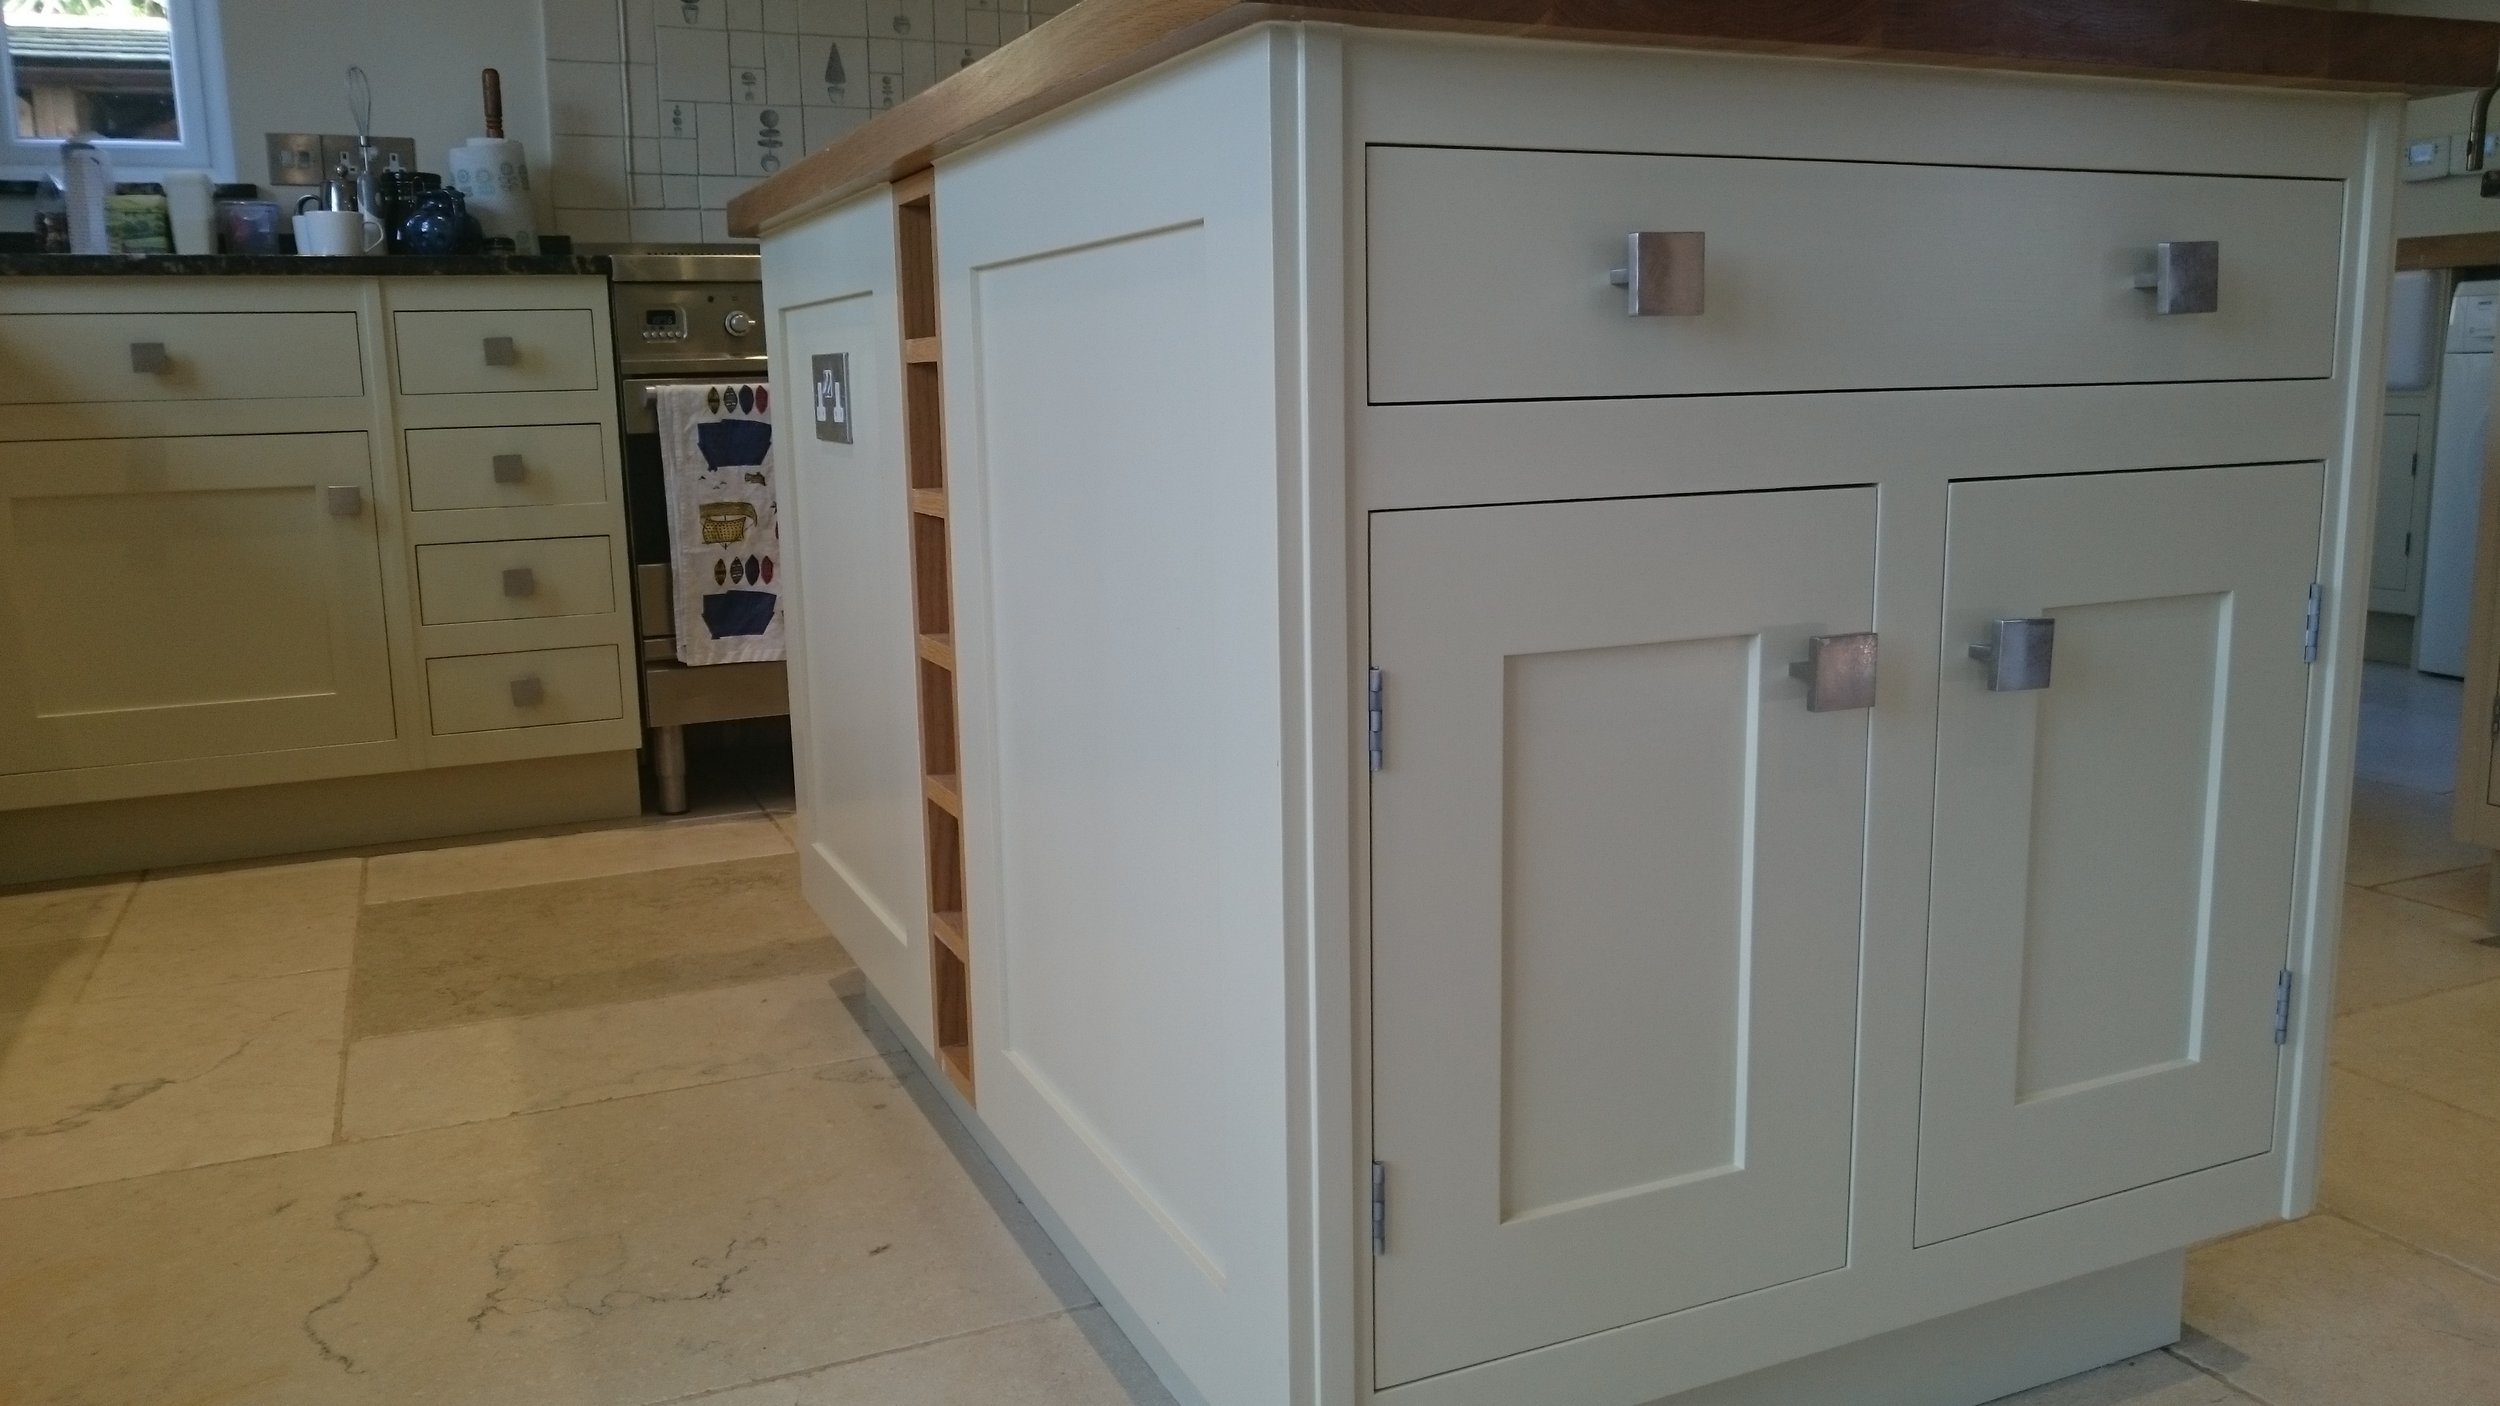 Full Kitchen painting and decorating, including Cupboards in Alton Barnes, Wiltshire